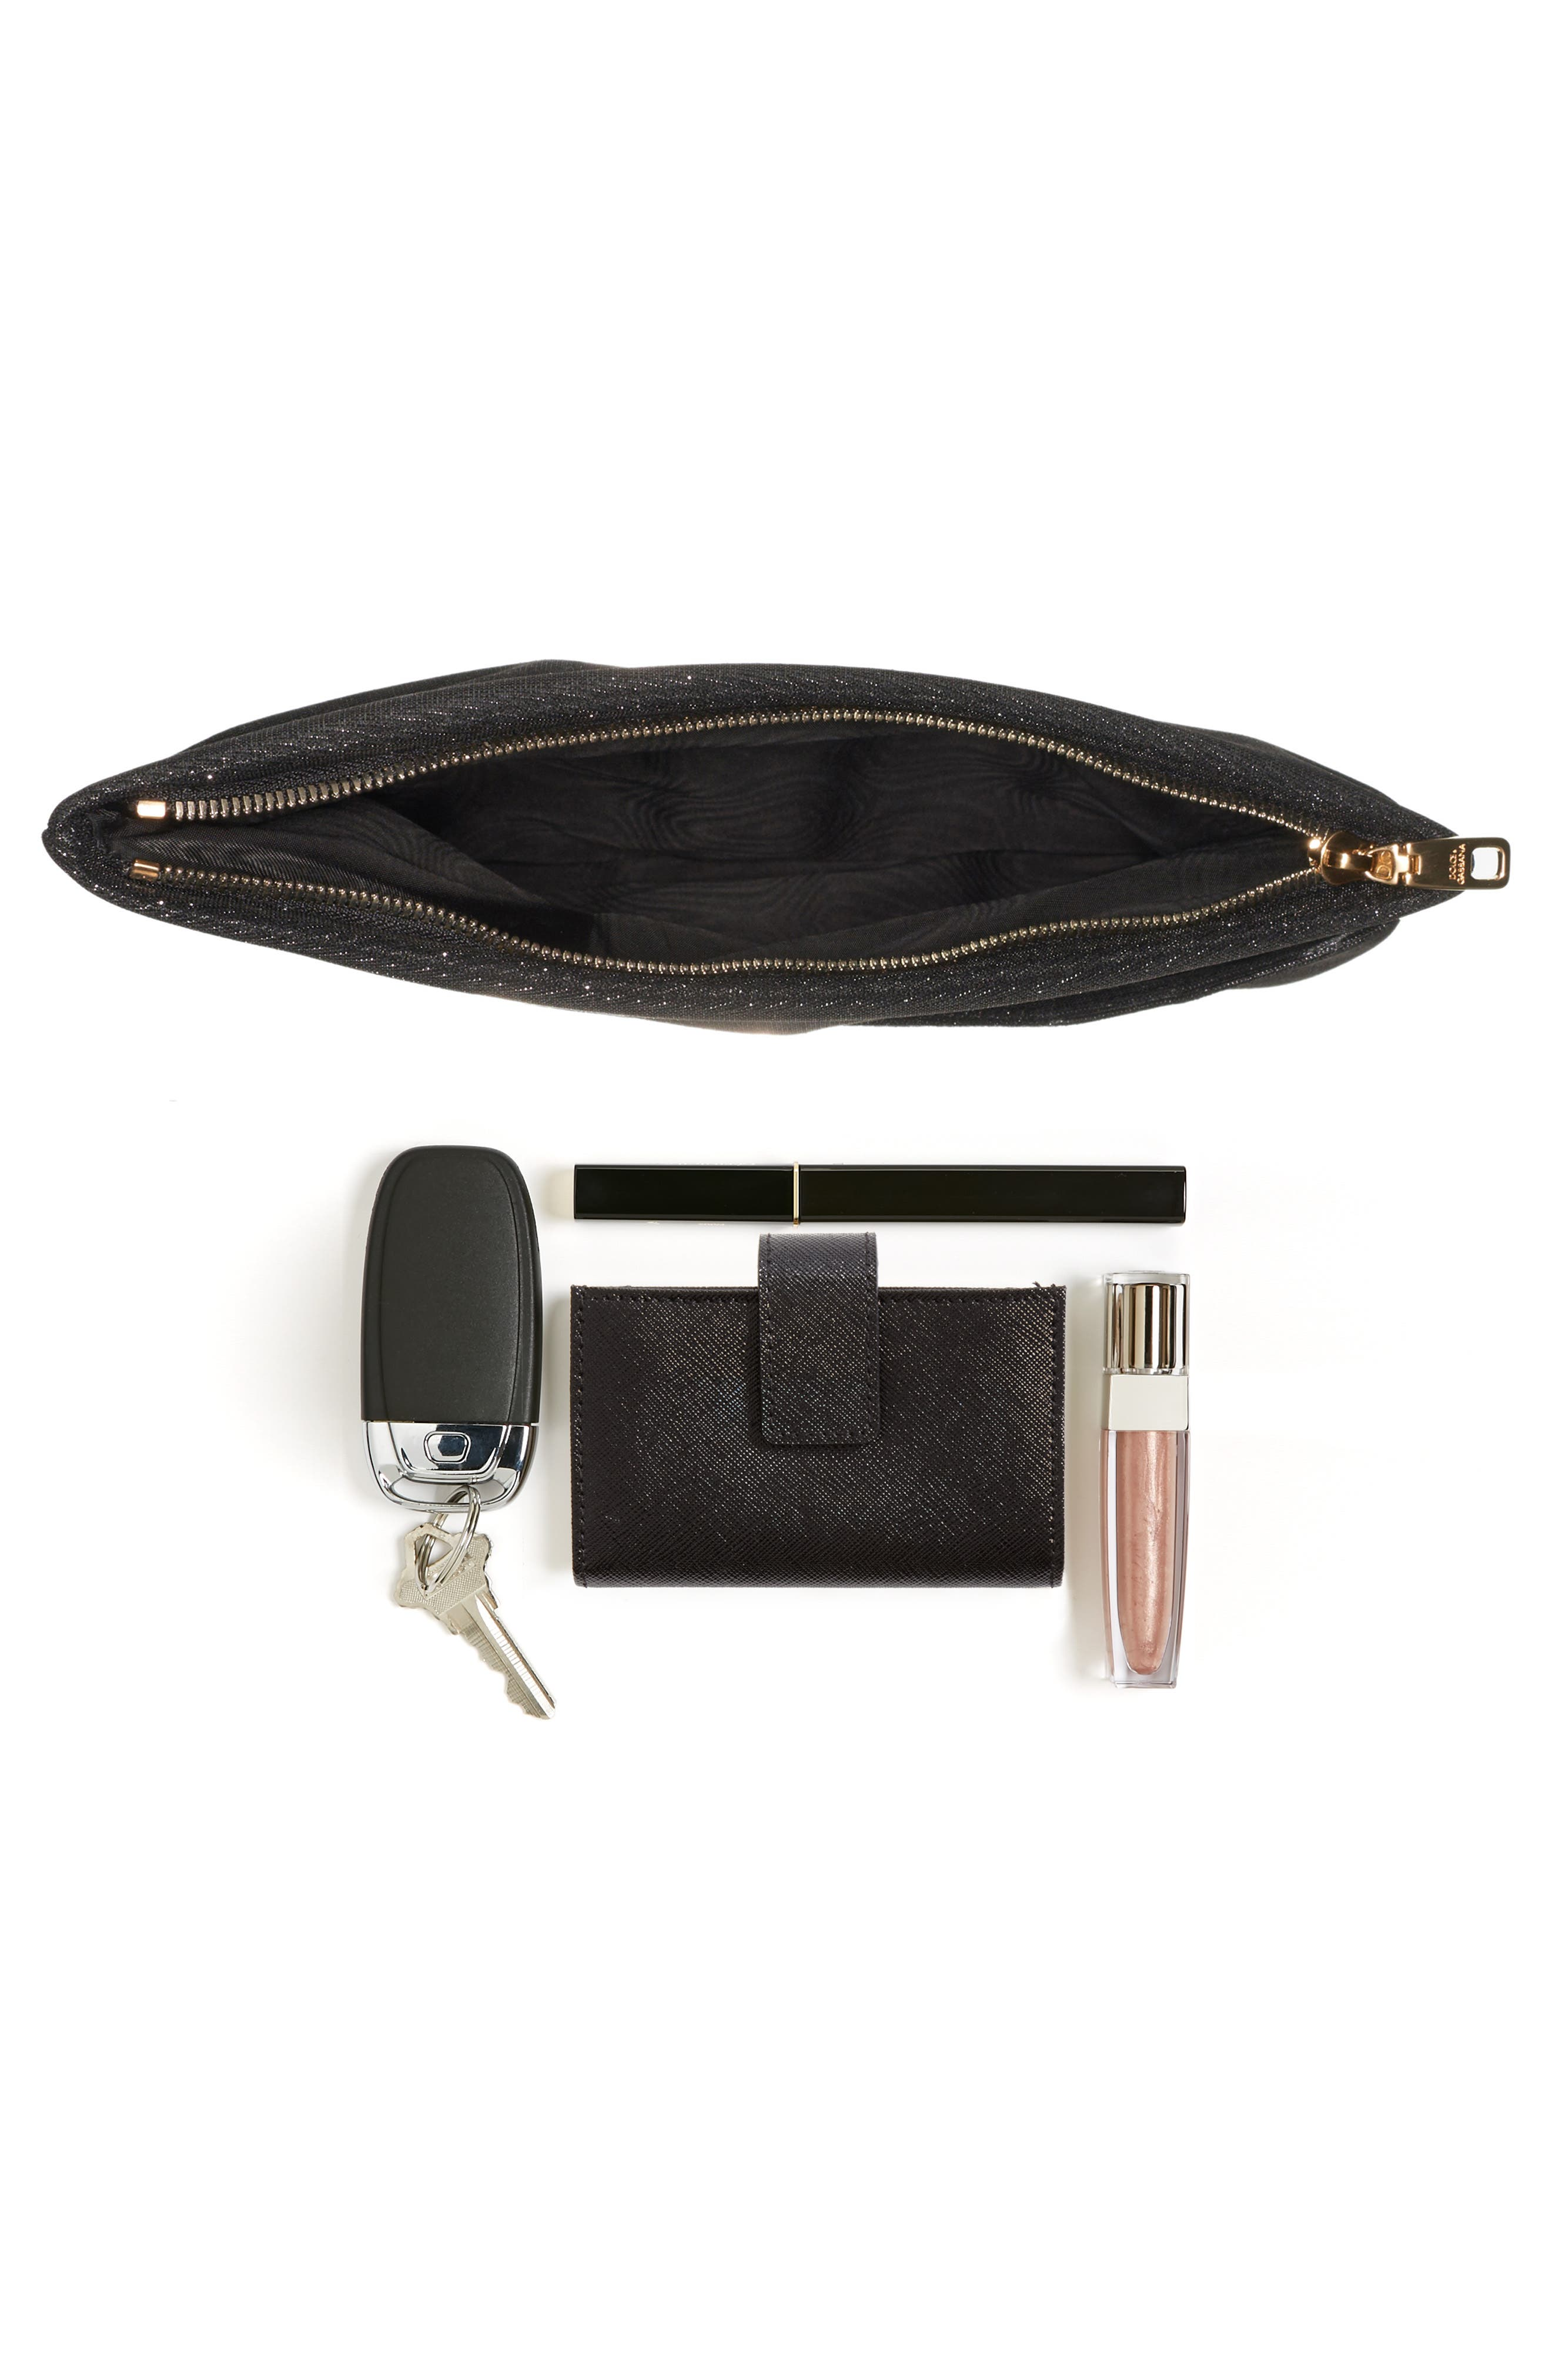 Hashtag Foldover Clutch,                             Alternate thumbnail 7, color,                             002